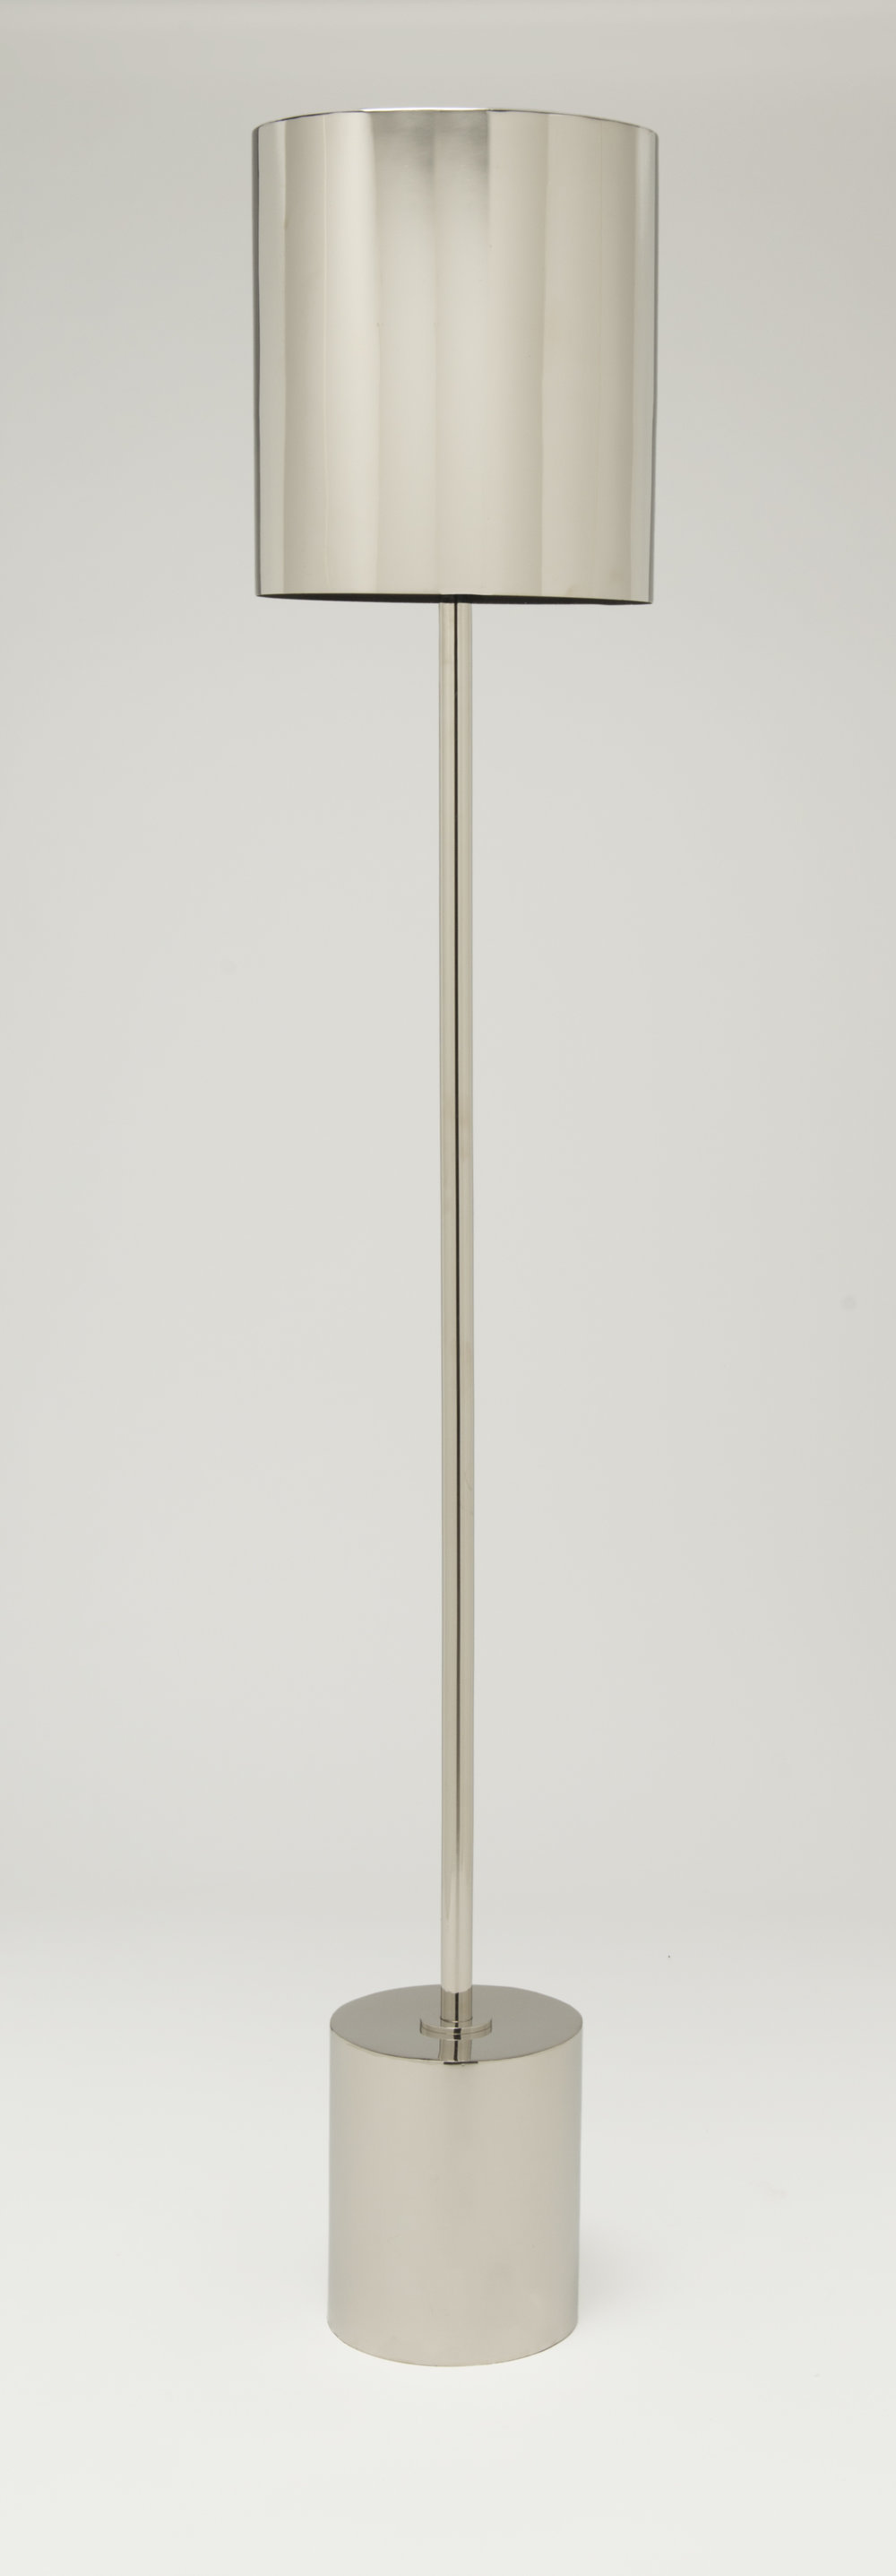 Shannon_floor_lamp_white bronze2.jpg